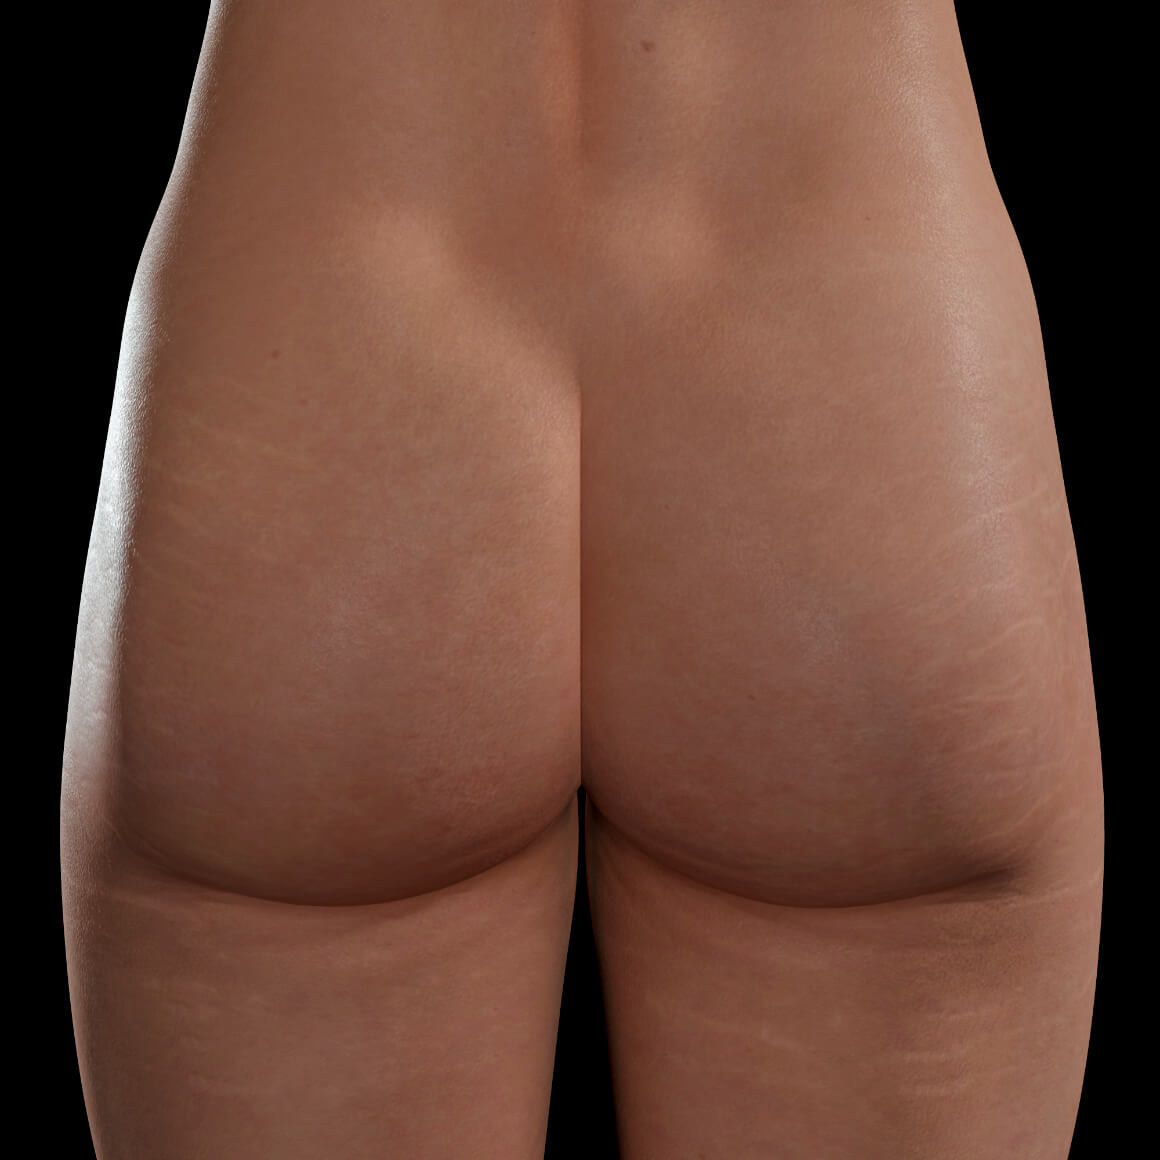 Buttocks and thighs of a Clinique Chloé female patient after stretch mark treatments with PRP